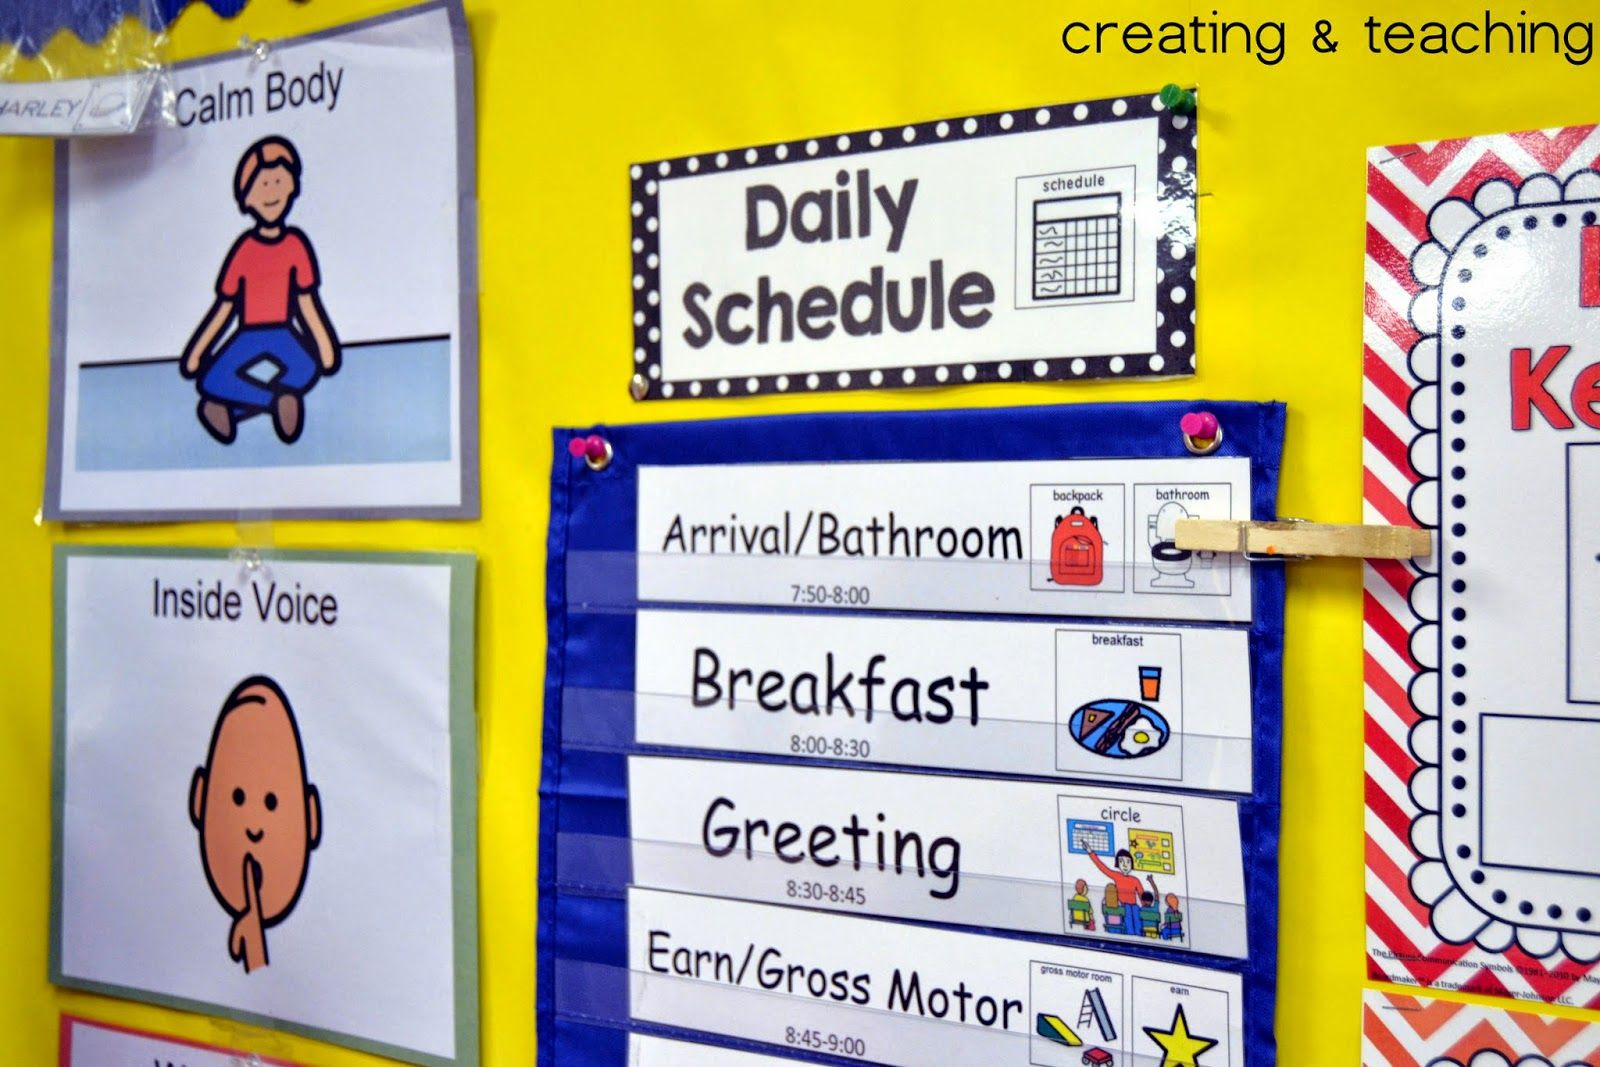 Daily Schedule For Autism Classroom | Daily Agenda Calendar